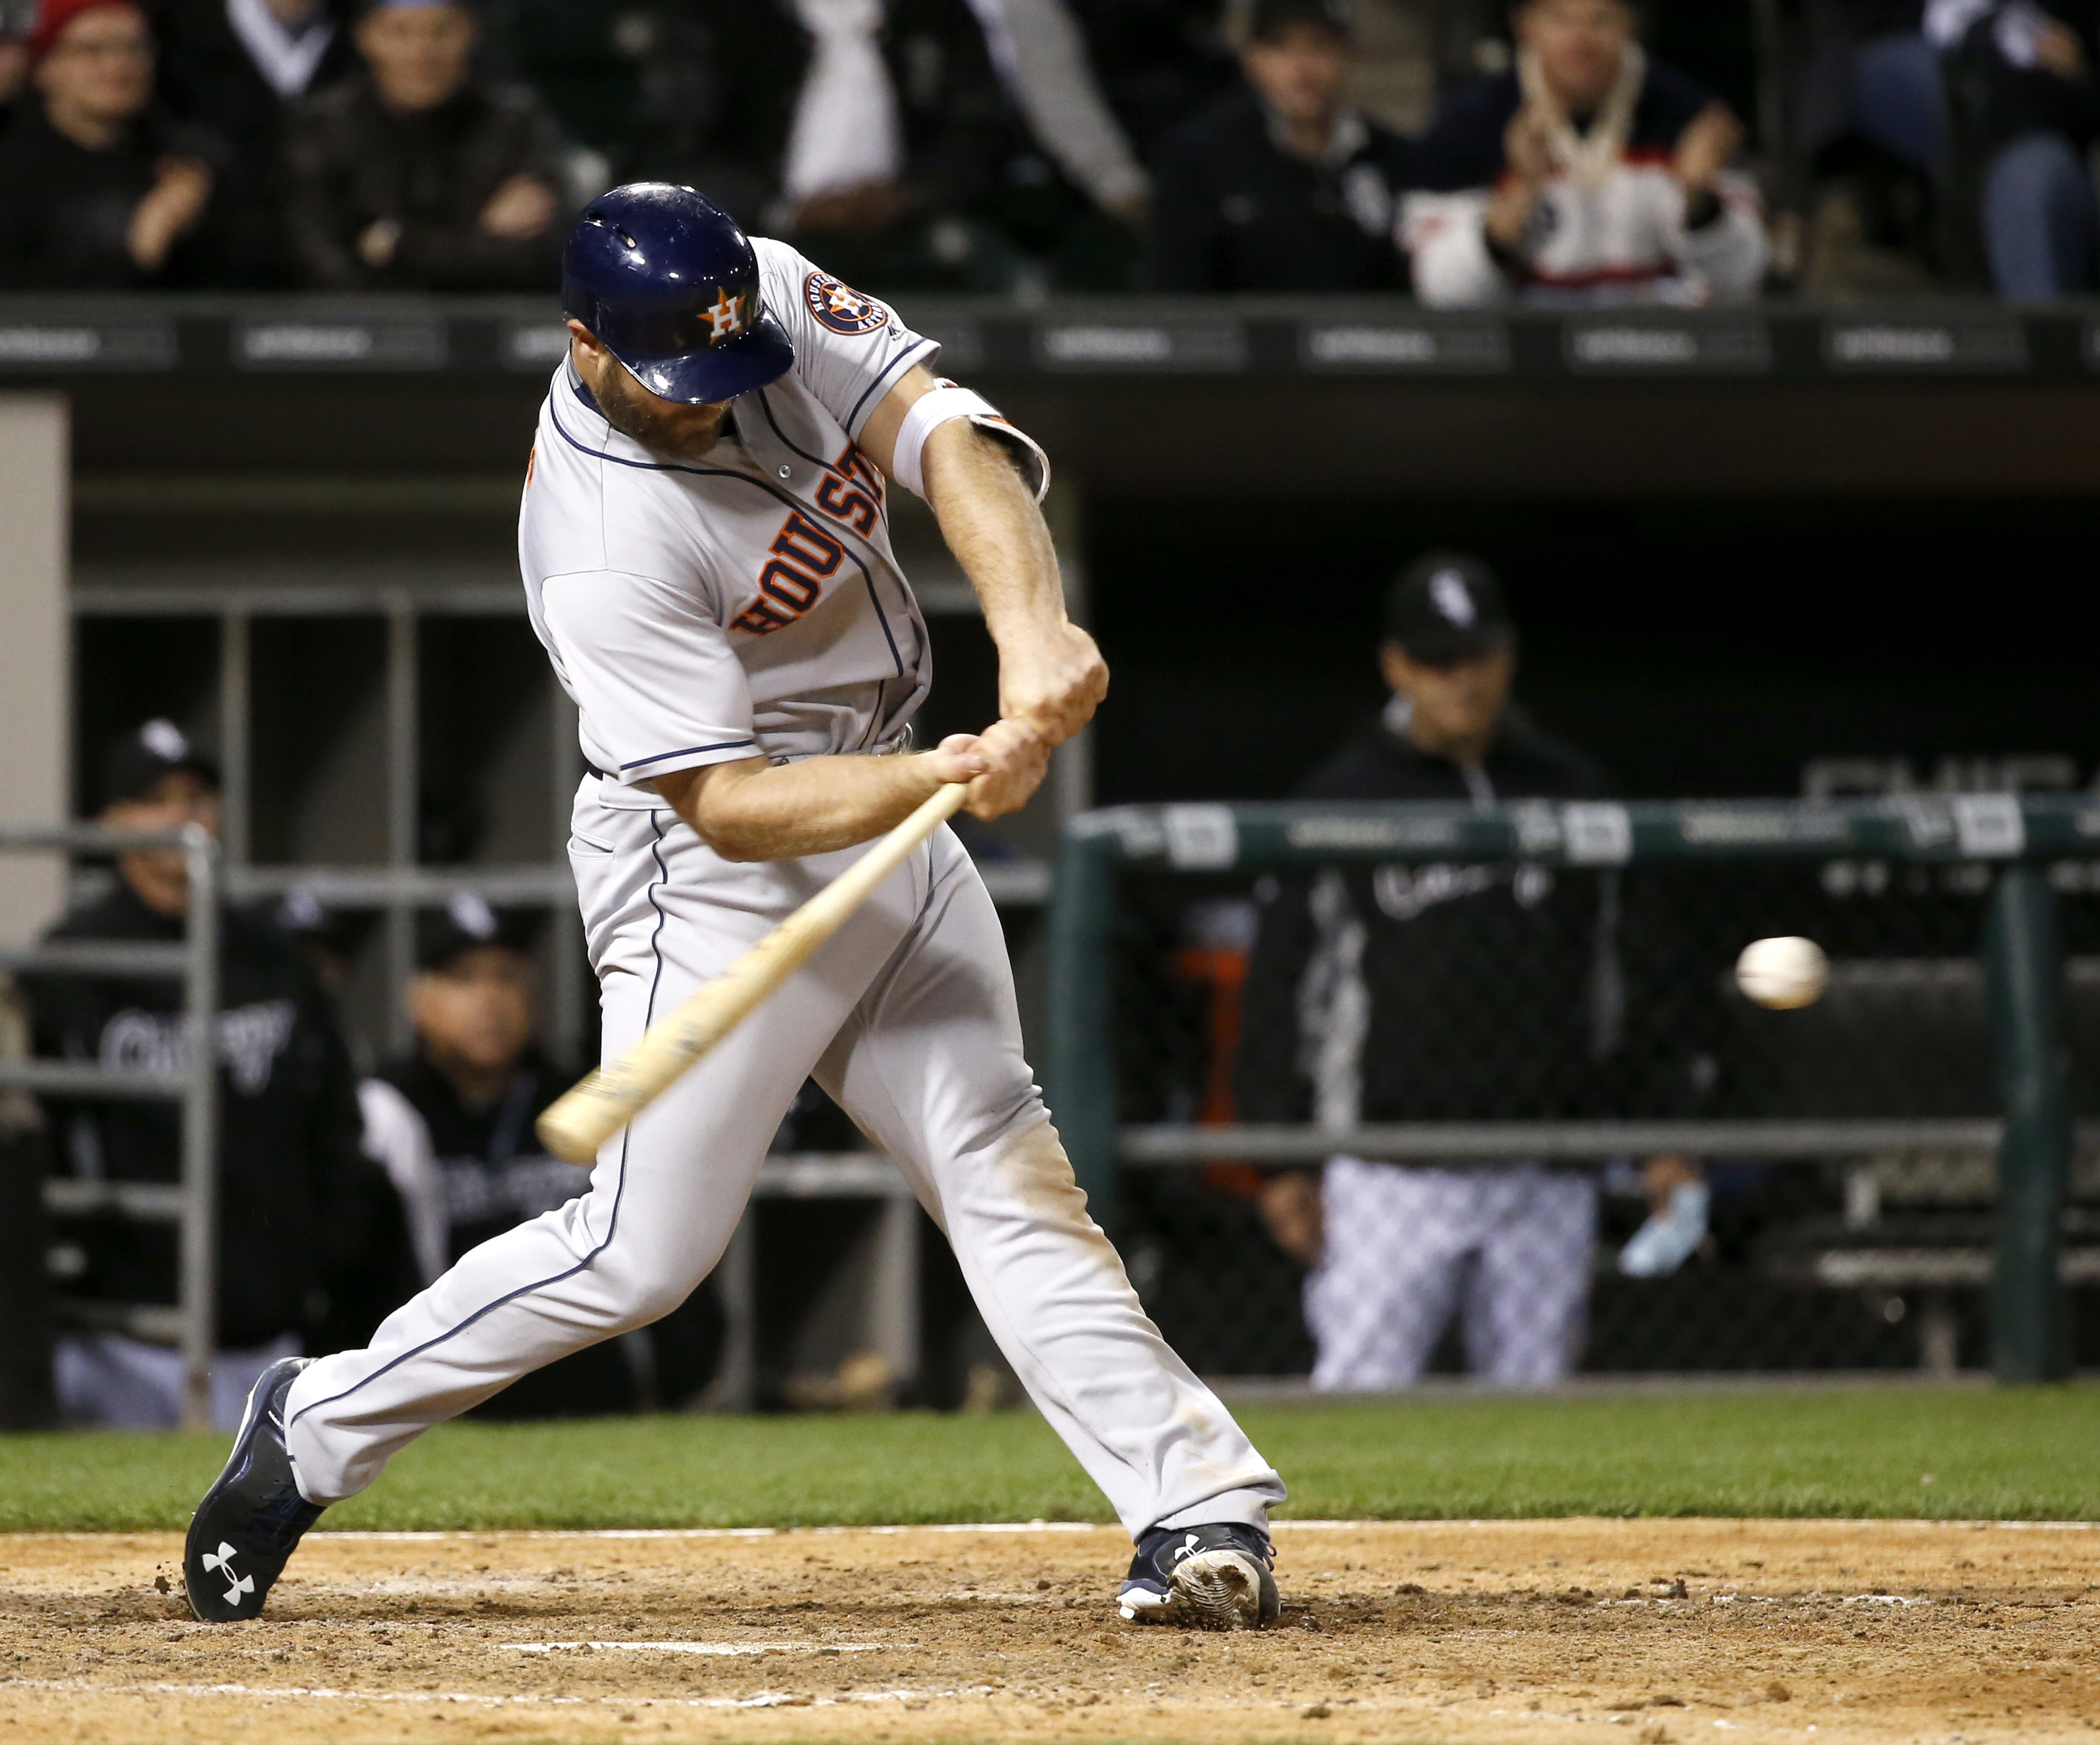 Houston Astros' Evan Gattis swings on a two-run home run off Chicago White Sox relief pitcher Matt Albers during the 11th inning of a baseball game Tuesday, May 17, 2016, in Chicago. (AP Photo/Charles Rex Arbogast)